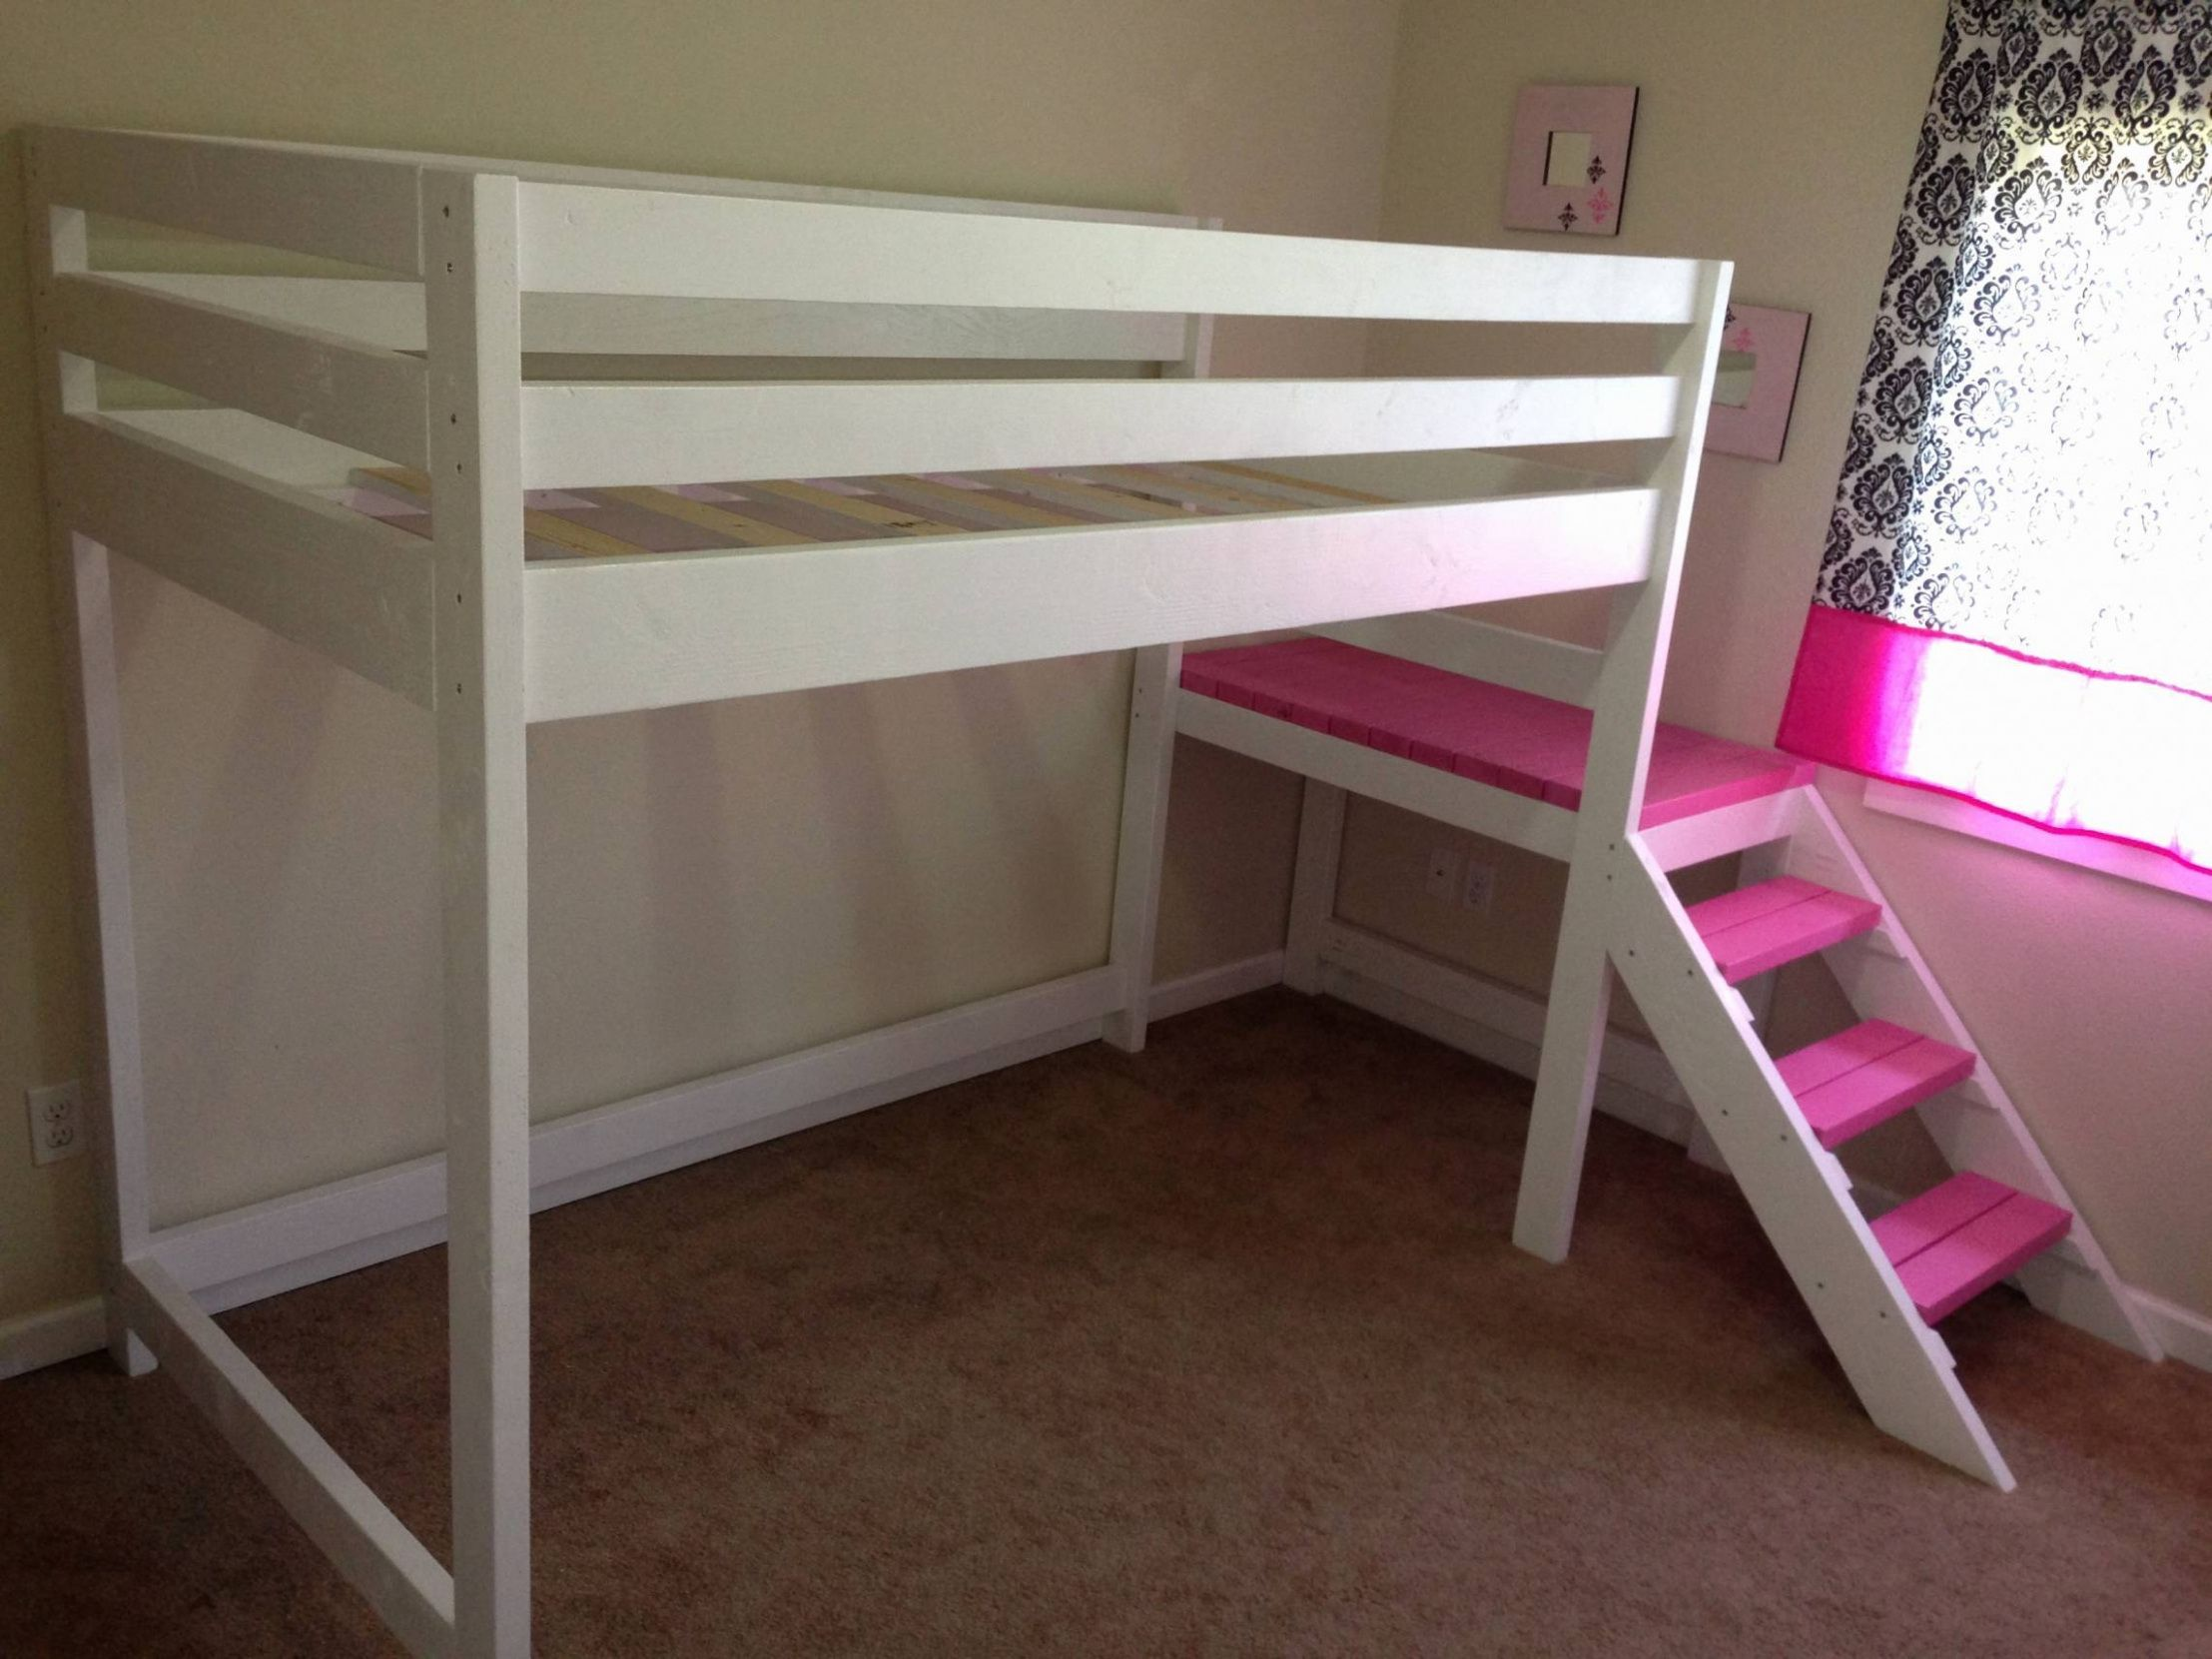 55 Bunk Bed with Slide and Desk Check more at http